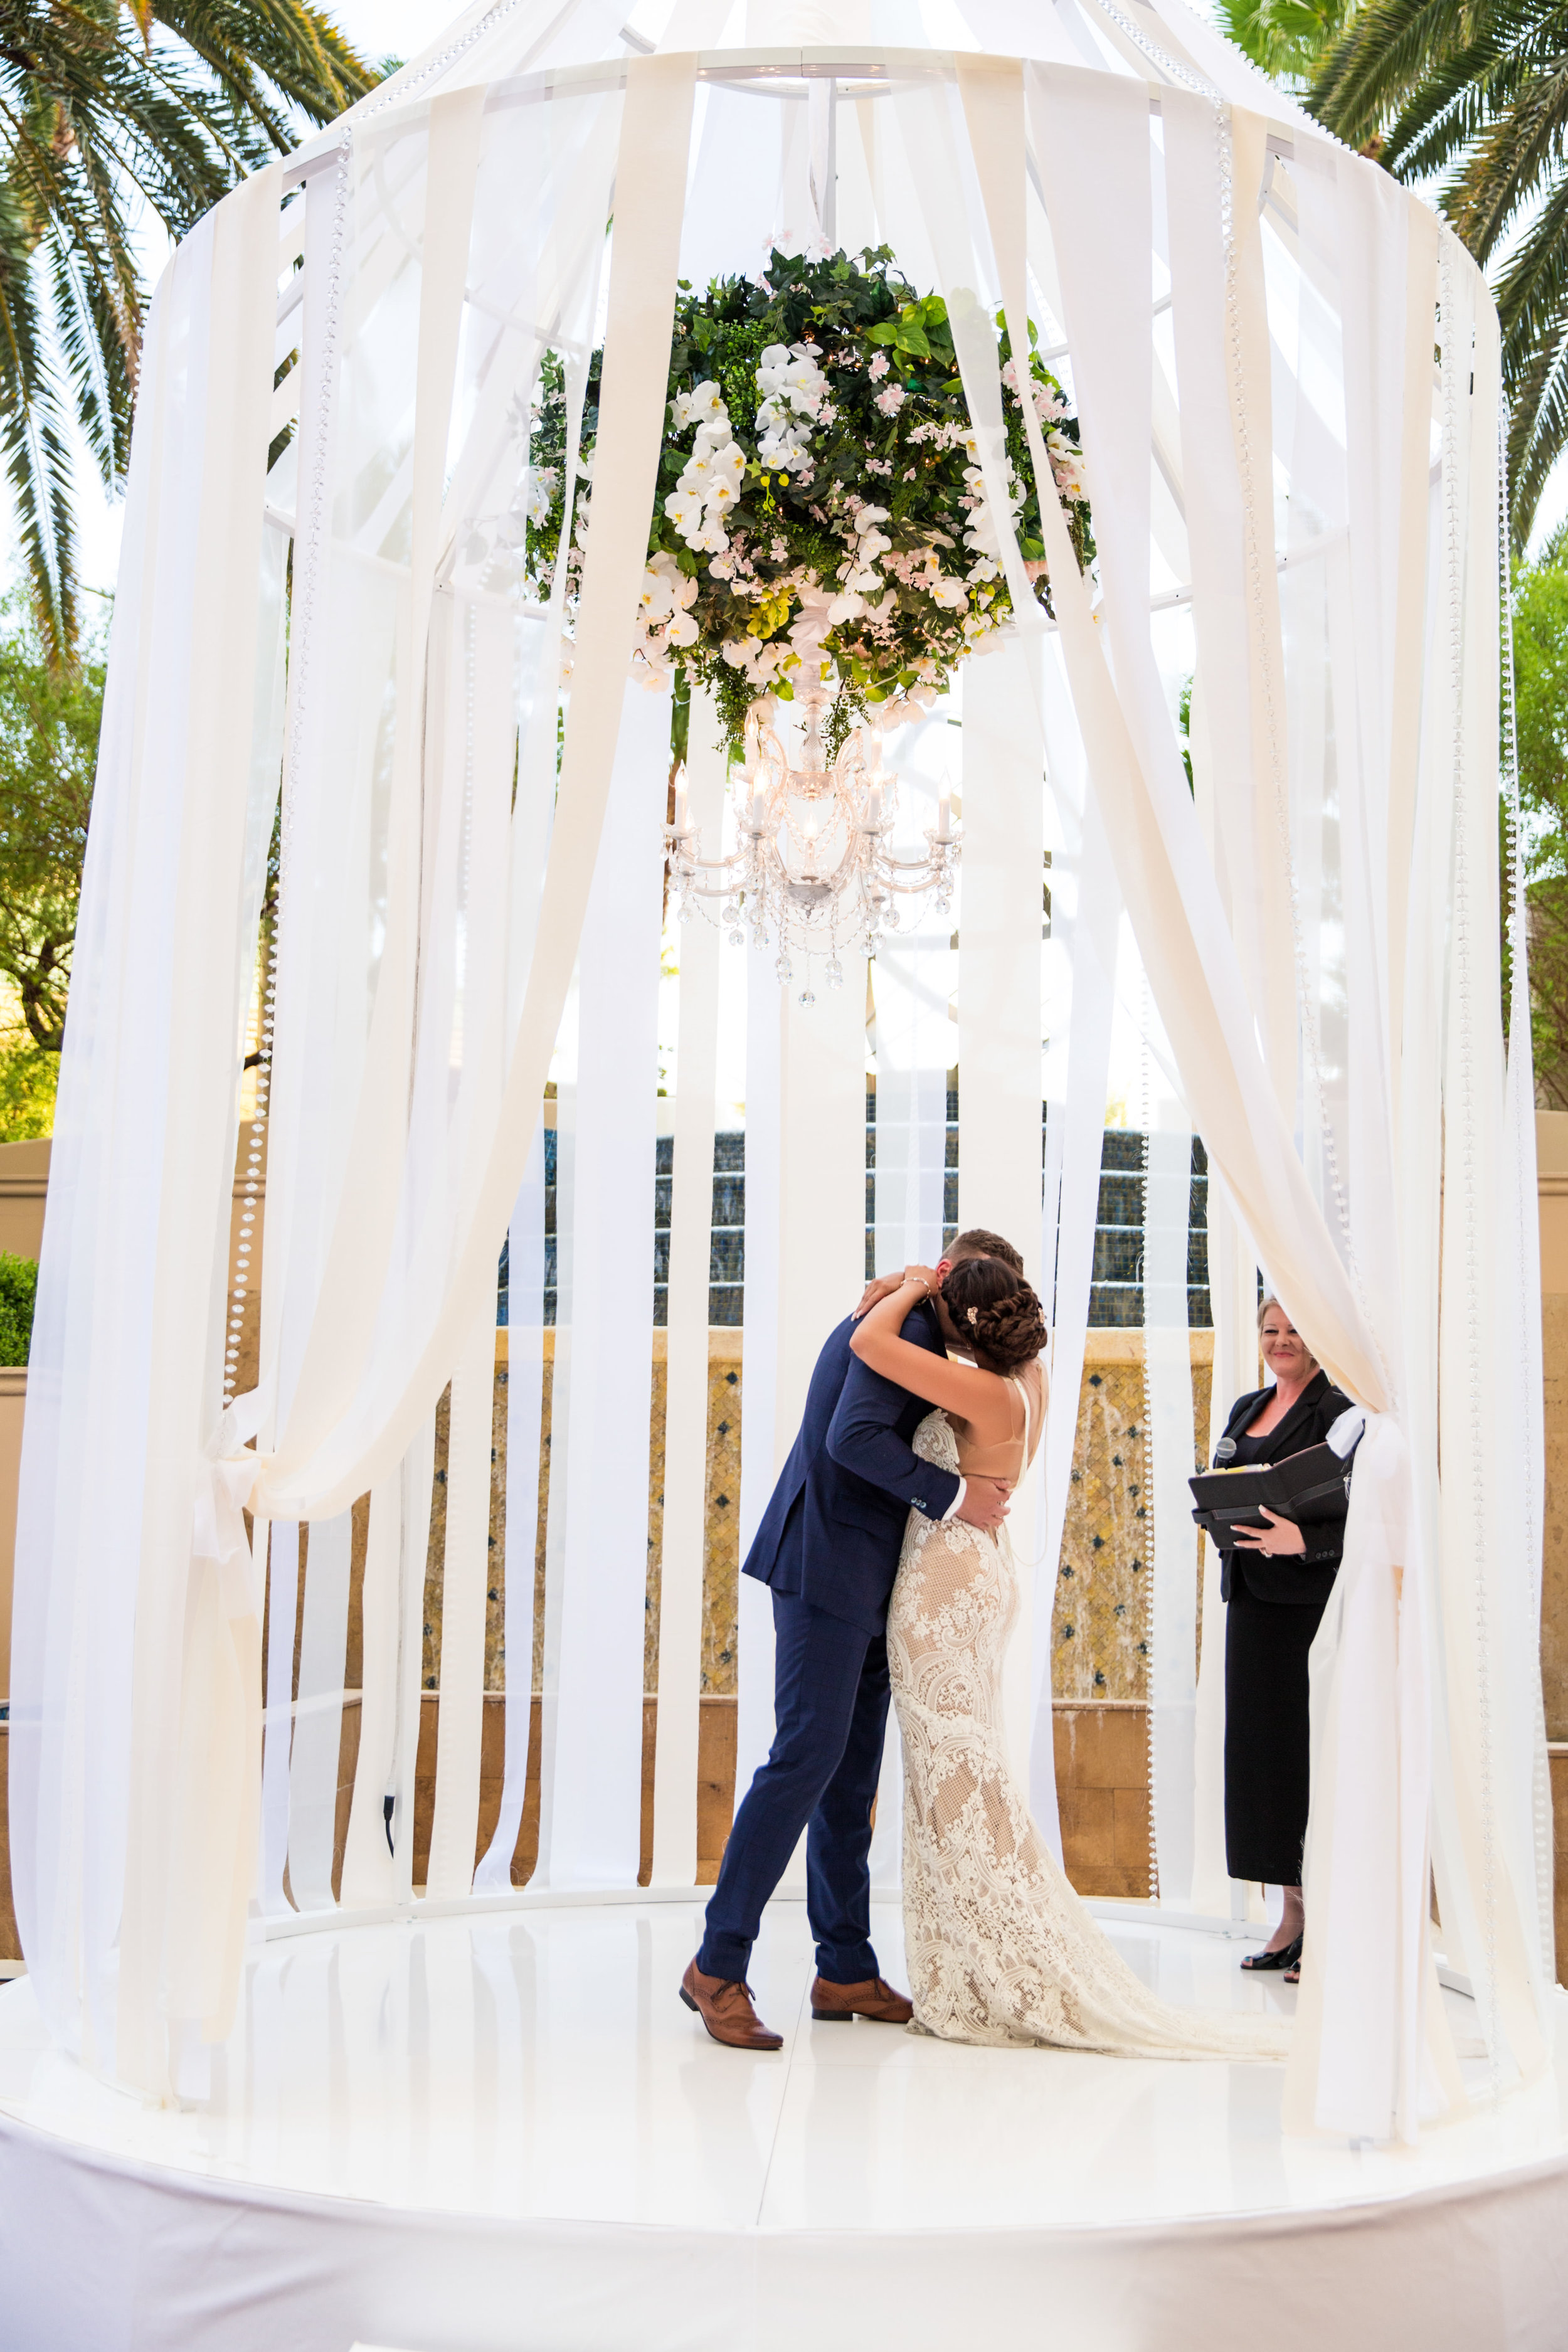 First kiss. Wedding Planning by  Andrea Eppolito Events  · Photography by  Shandro Photo   · Wedding Venue  Four Seasons Las Vegas  · Floral and Decor by  Destination by Design  · Cake by  Four Seasons Las Vegas  · Chandeliers and Lighting by  LED Unplugged  · Dress by  Berta